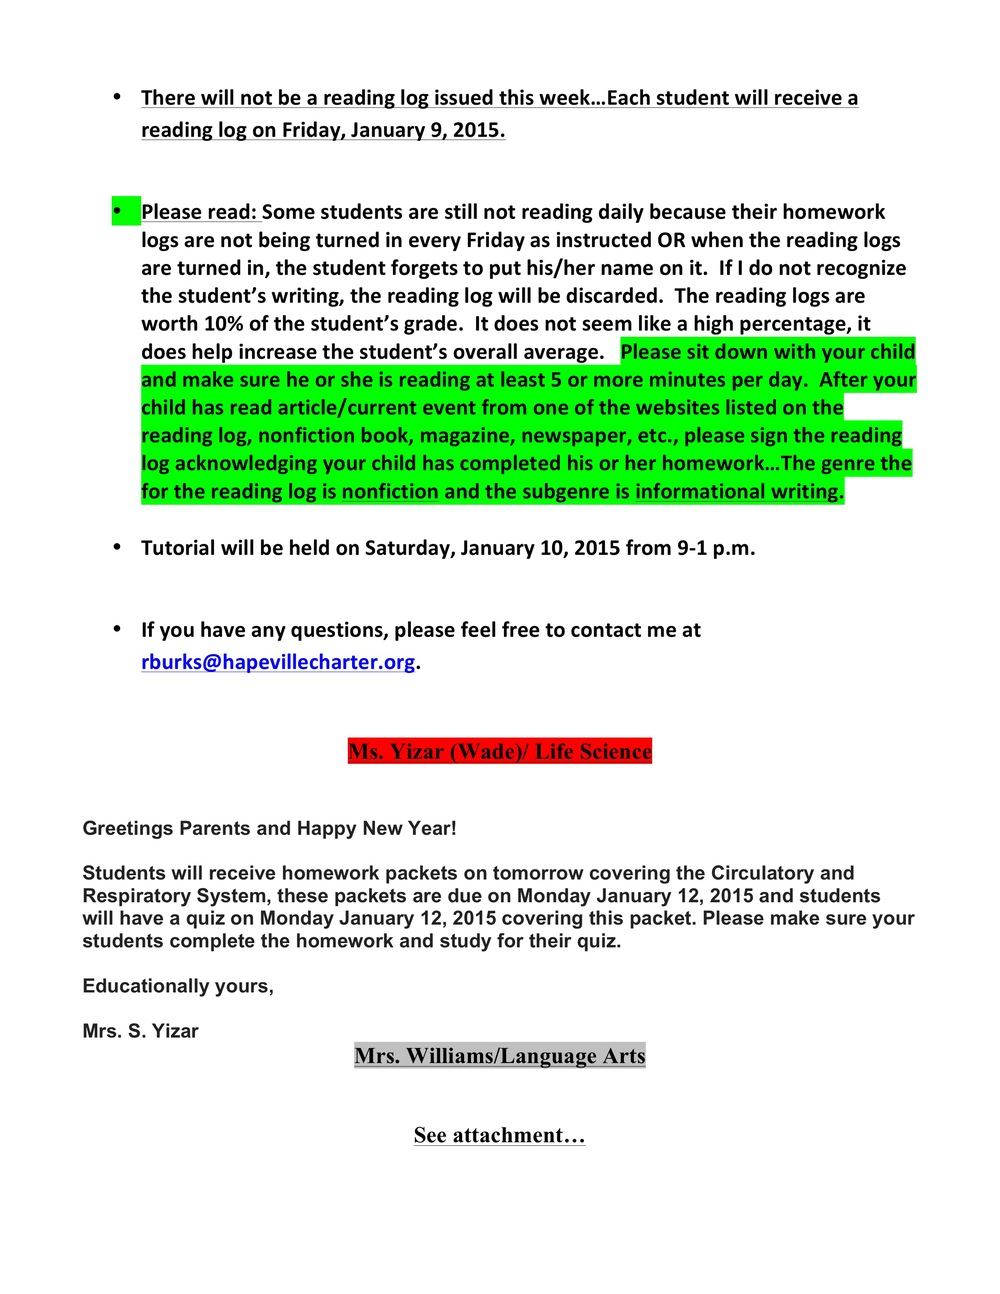 Newsletter Image7th grade January 6 2015 3.jpeg